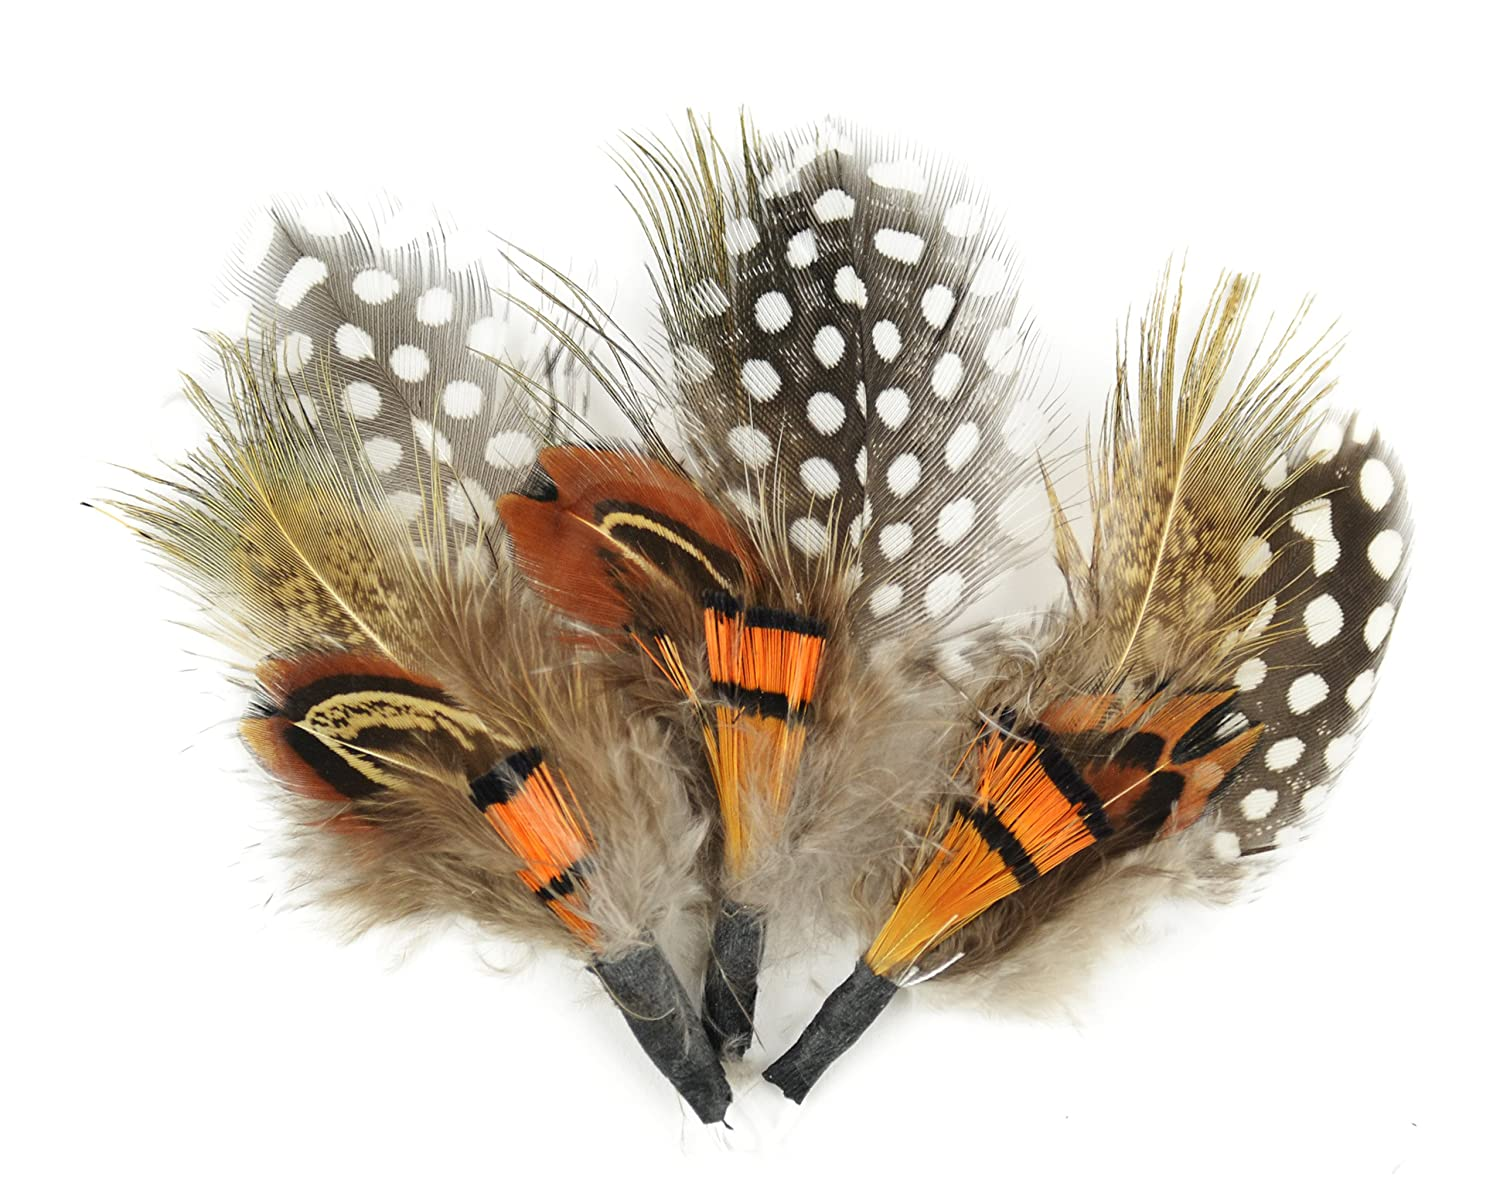 Touch of Nature 38108 3-Piece Natural Feather Pick with Nylon Loop for Arts and Crafts Guinea//Orange 3.5-Inch